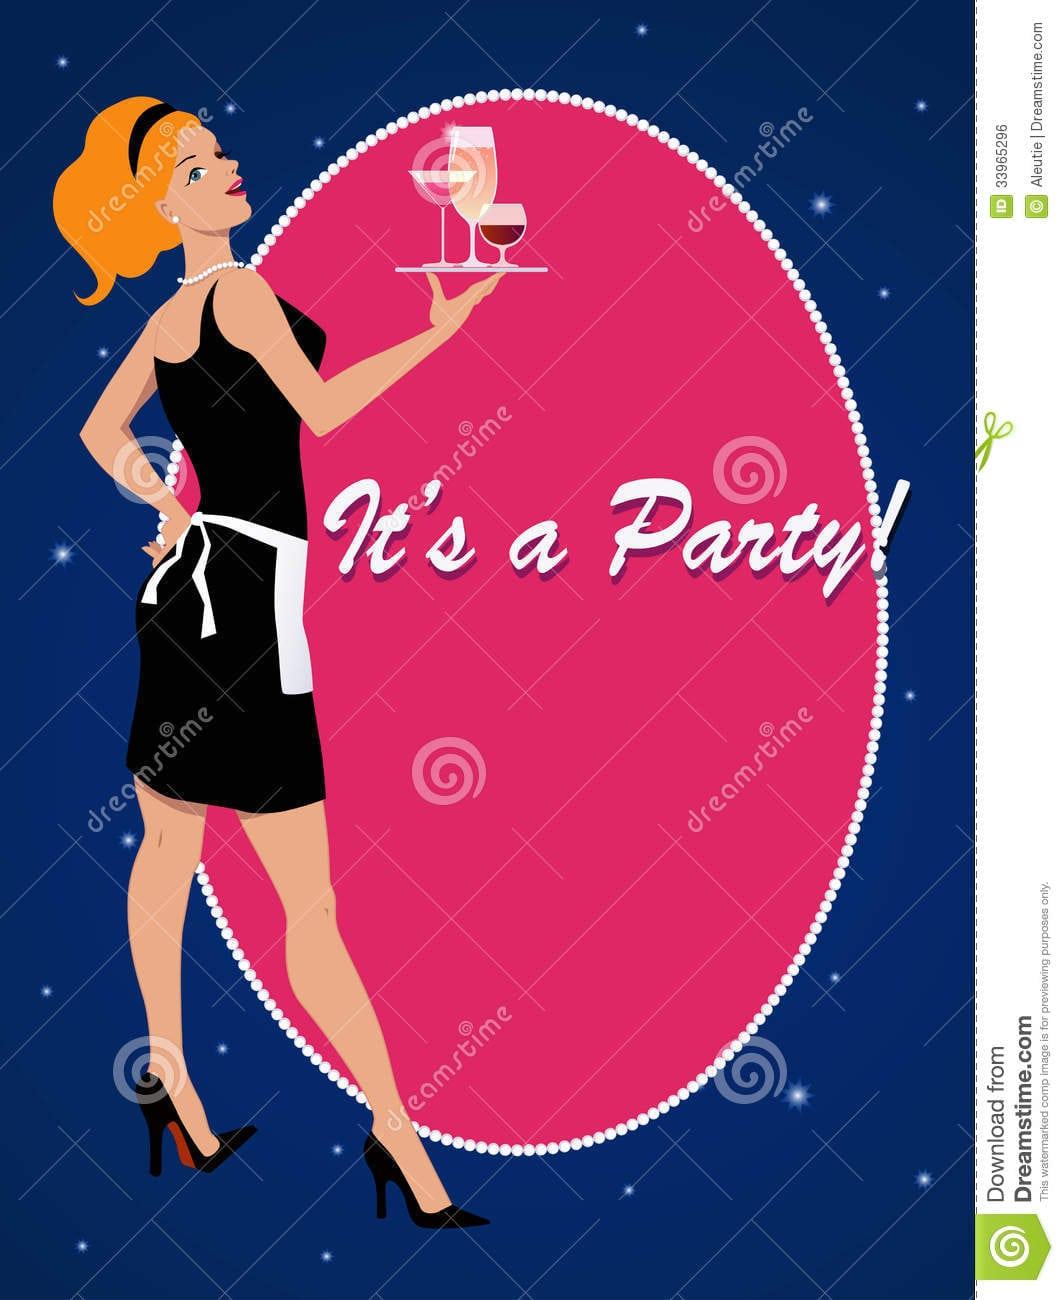 Party Invitation With A Cocktail Waitress Royalty Free Stock Image